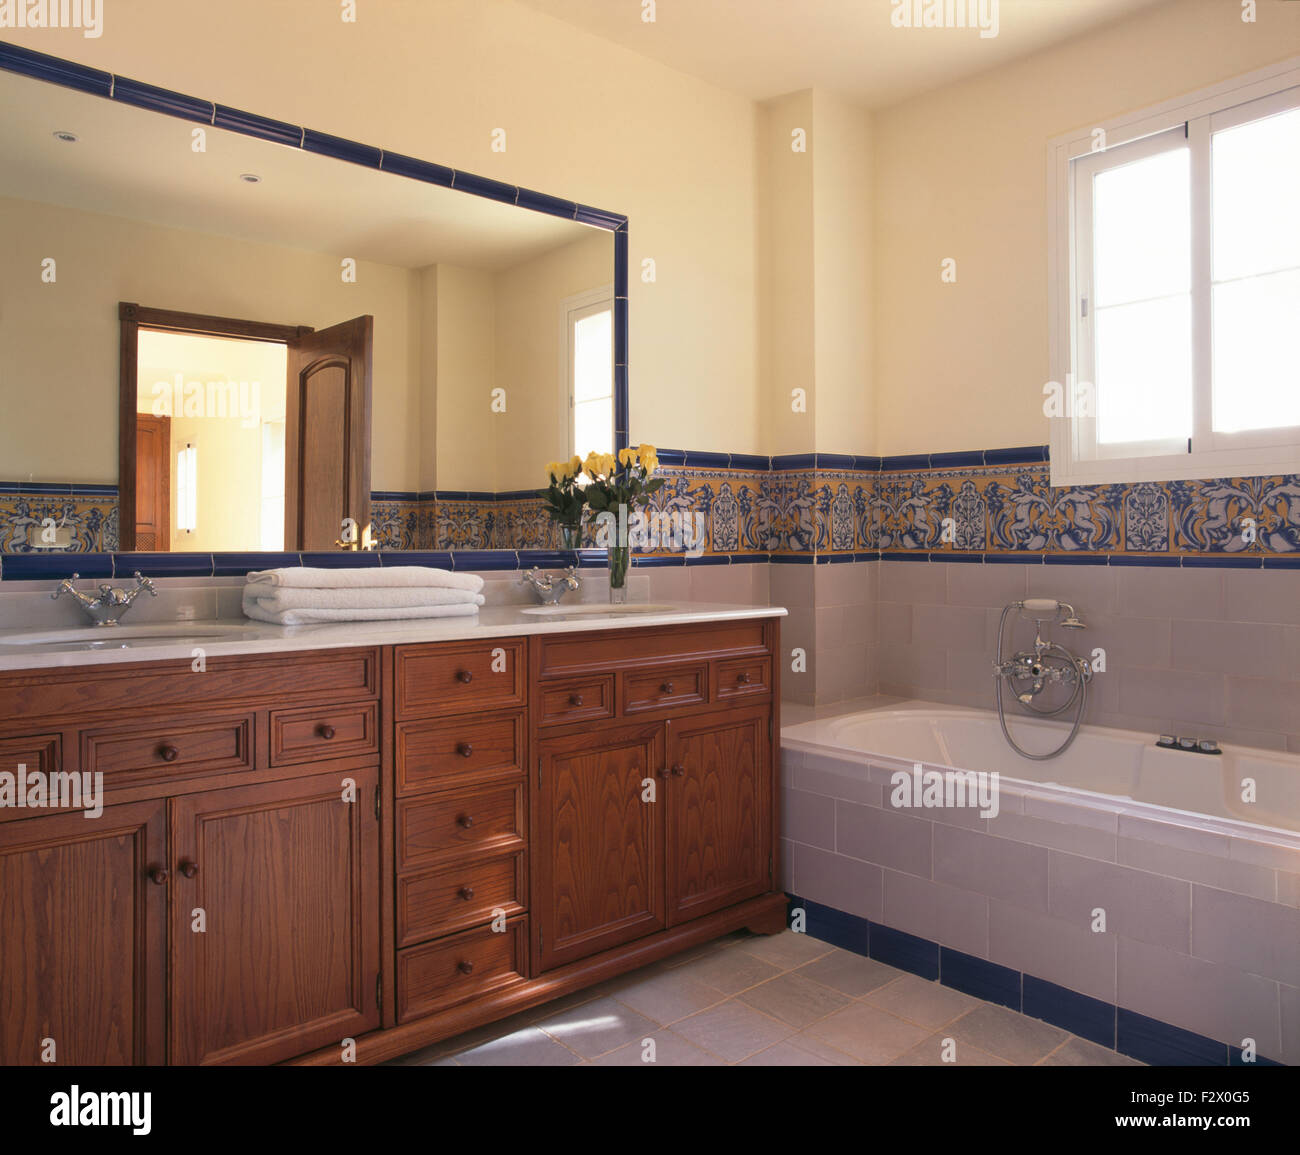 Large Mirror Above Wooden Vanity Unit In Modern Spanish Bathroom With A  Tiled Border Above The Bath